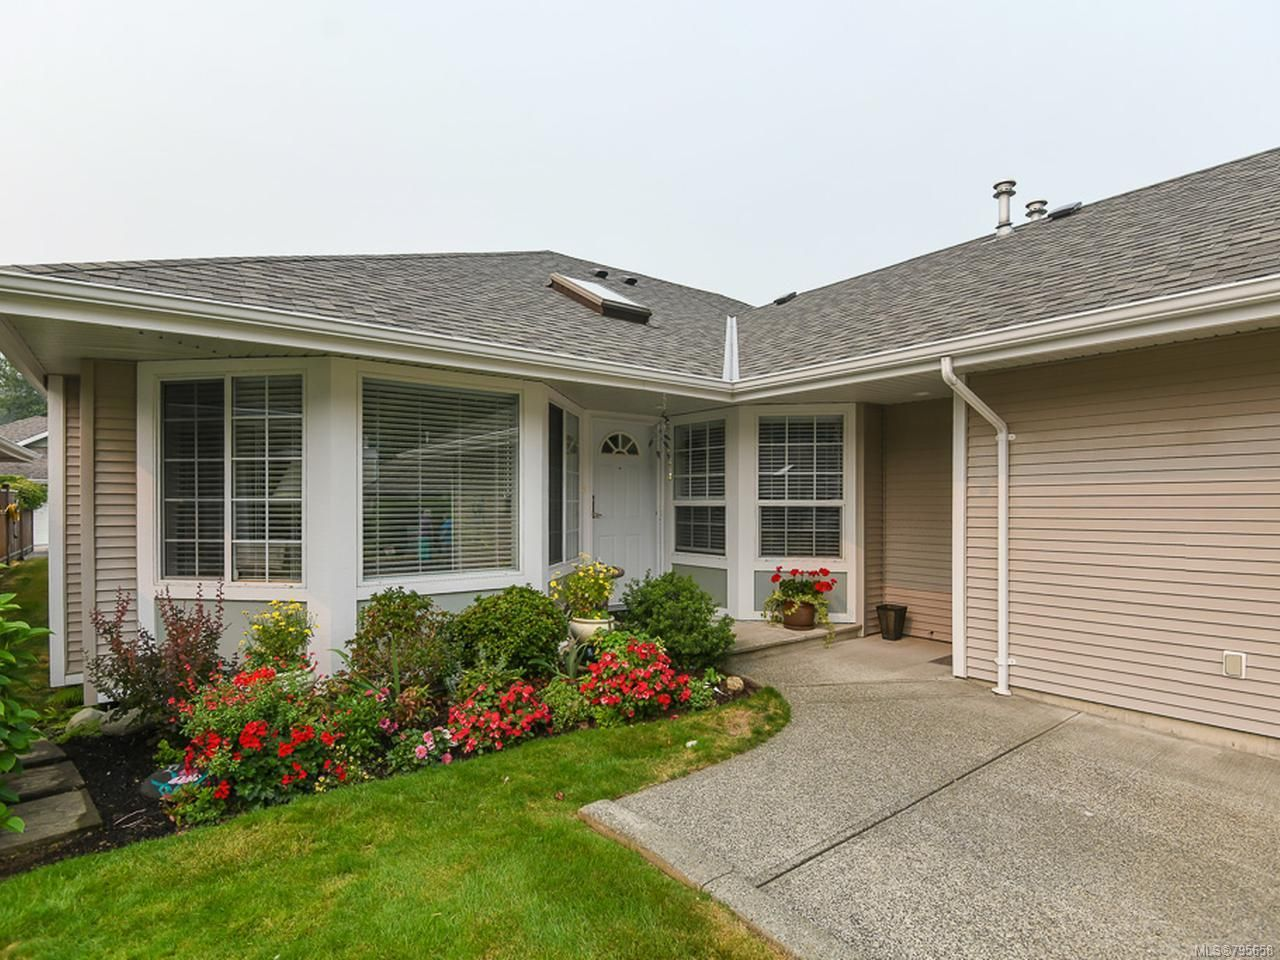 Main Photo: 16 2010 20th St in COURTENAY: CV Courtenay City Row/Townhouse for sale (Comox Valley)  : MLS®# 795658